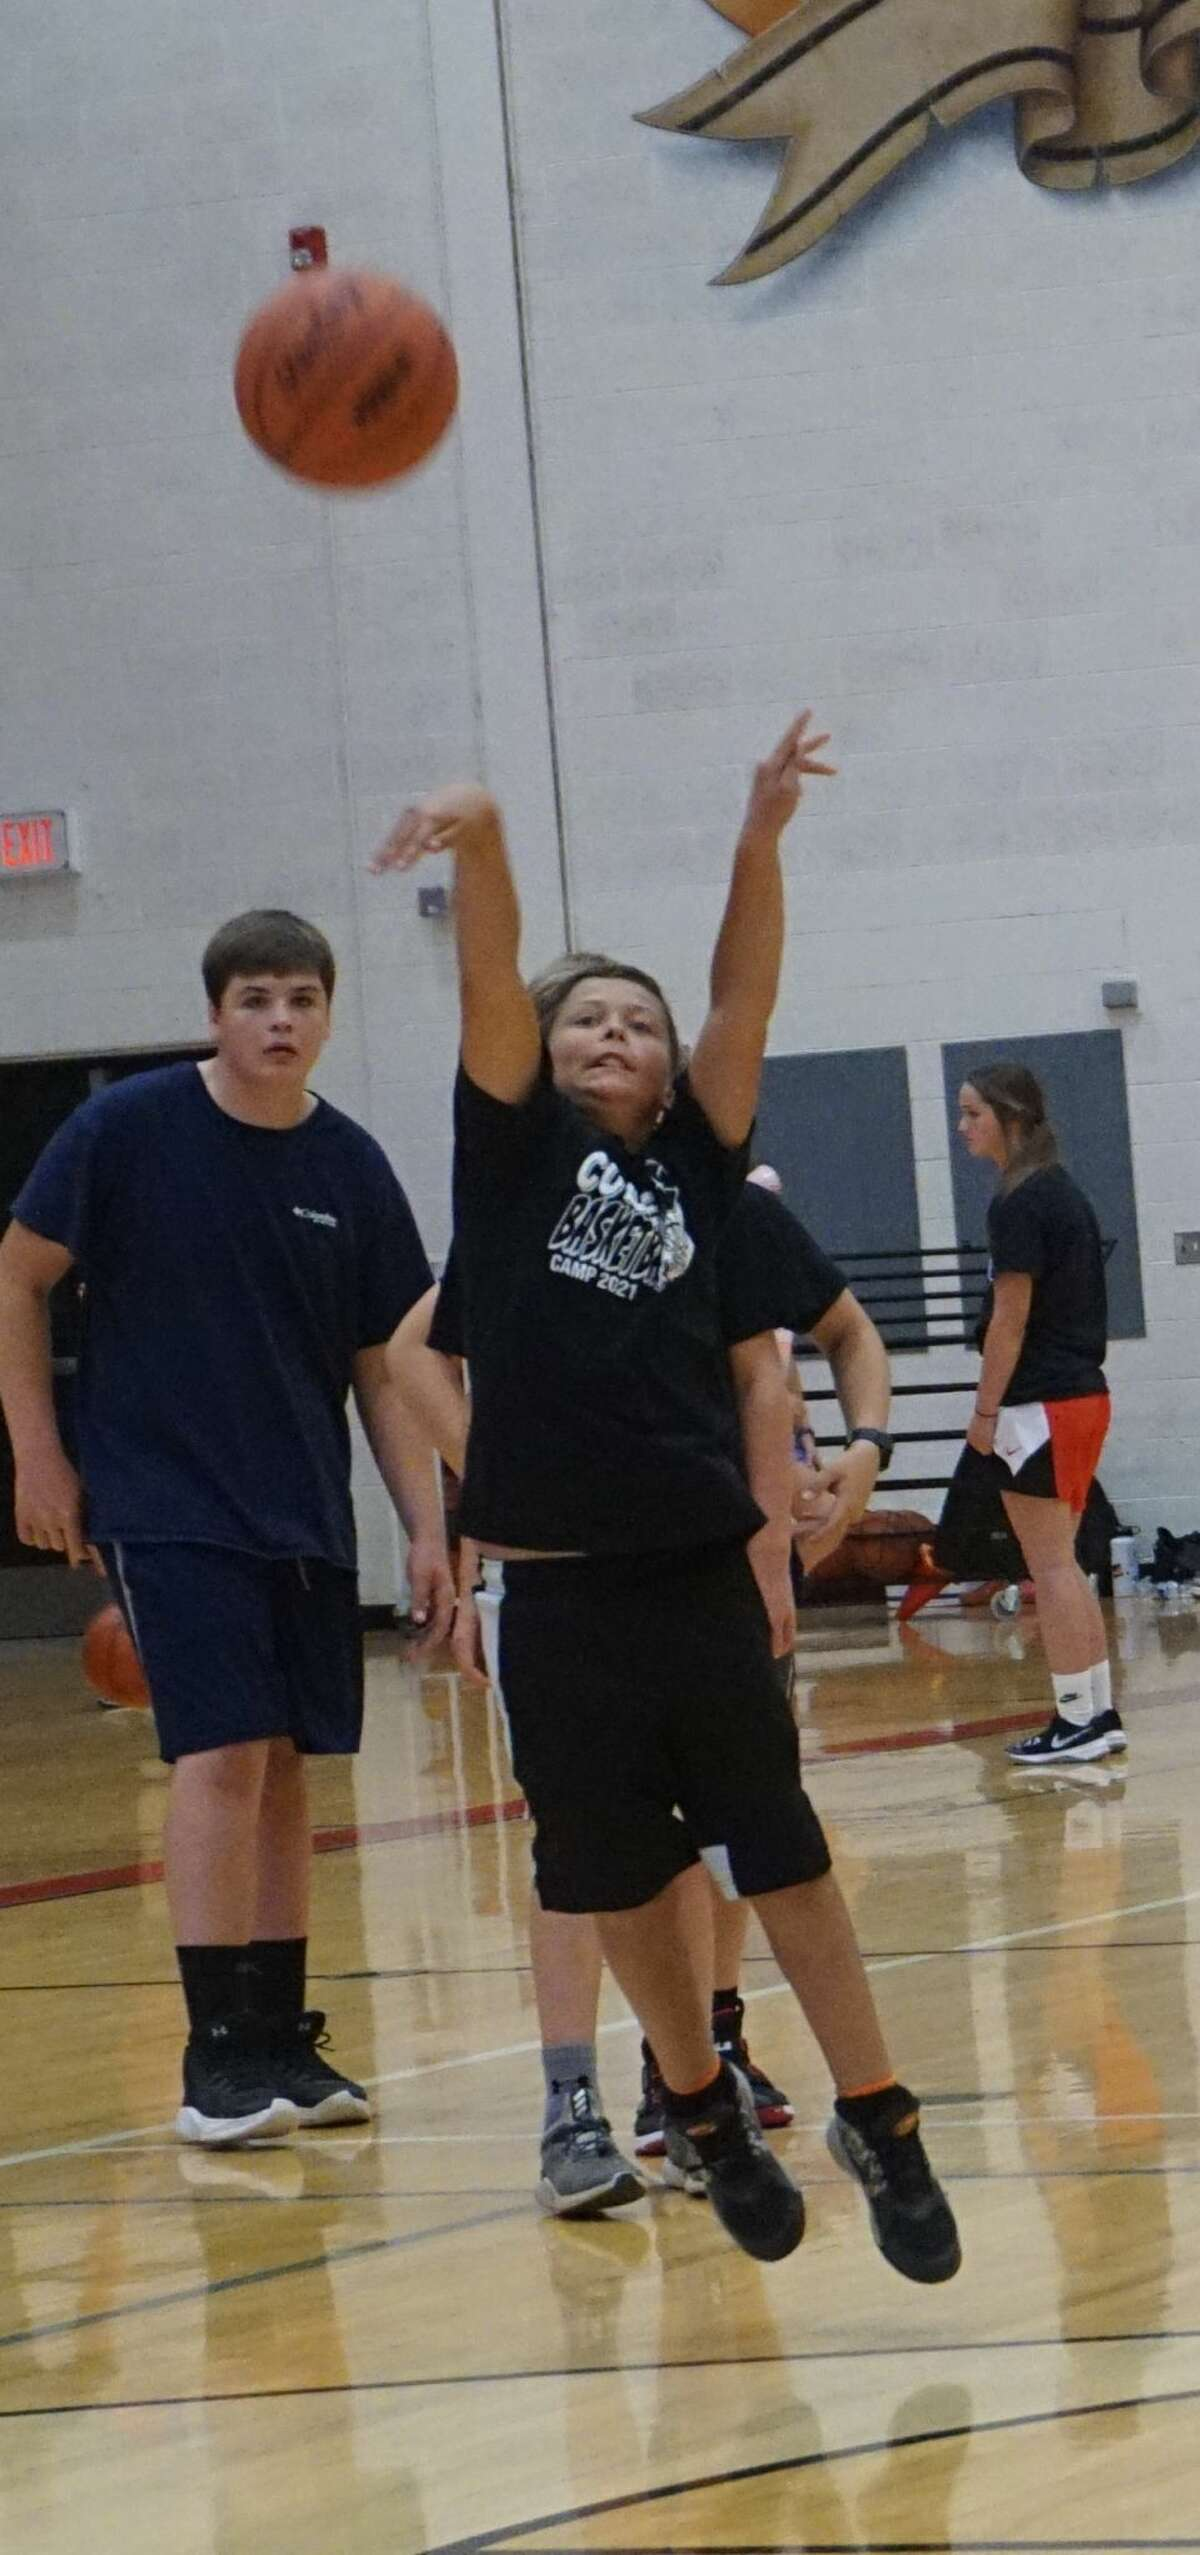 Thursday marked the third and final day of the first-ever Coyote Basketball camp.